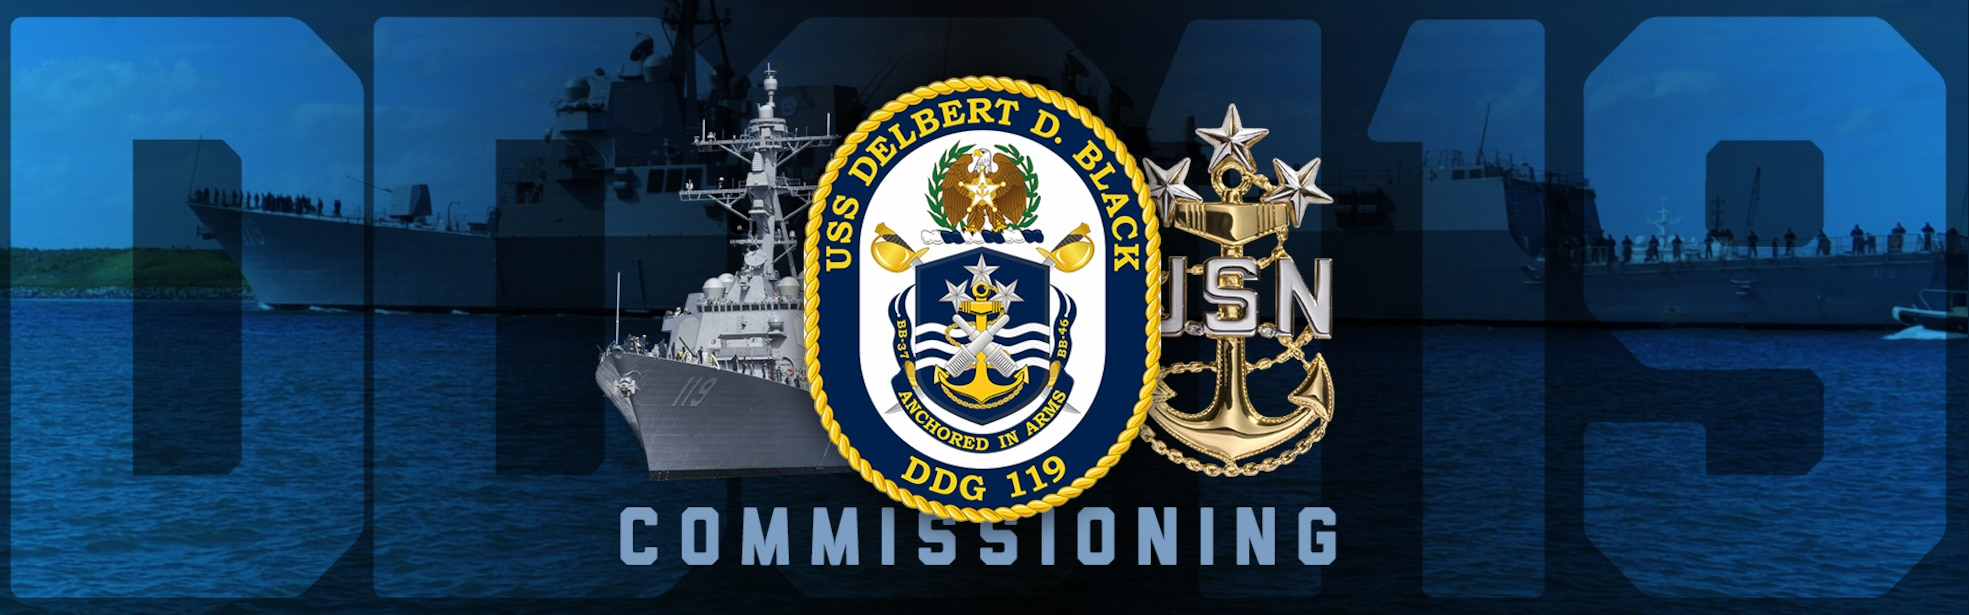 USS Delbert D. Black DDG 119 written on a crest with the word Commissioning below it.